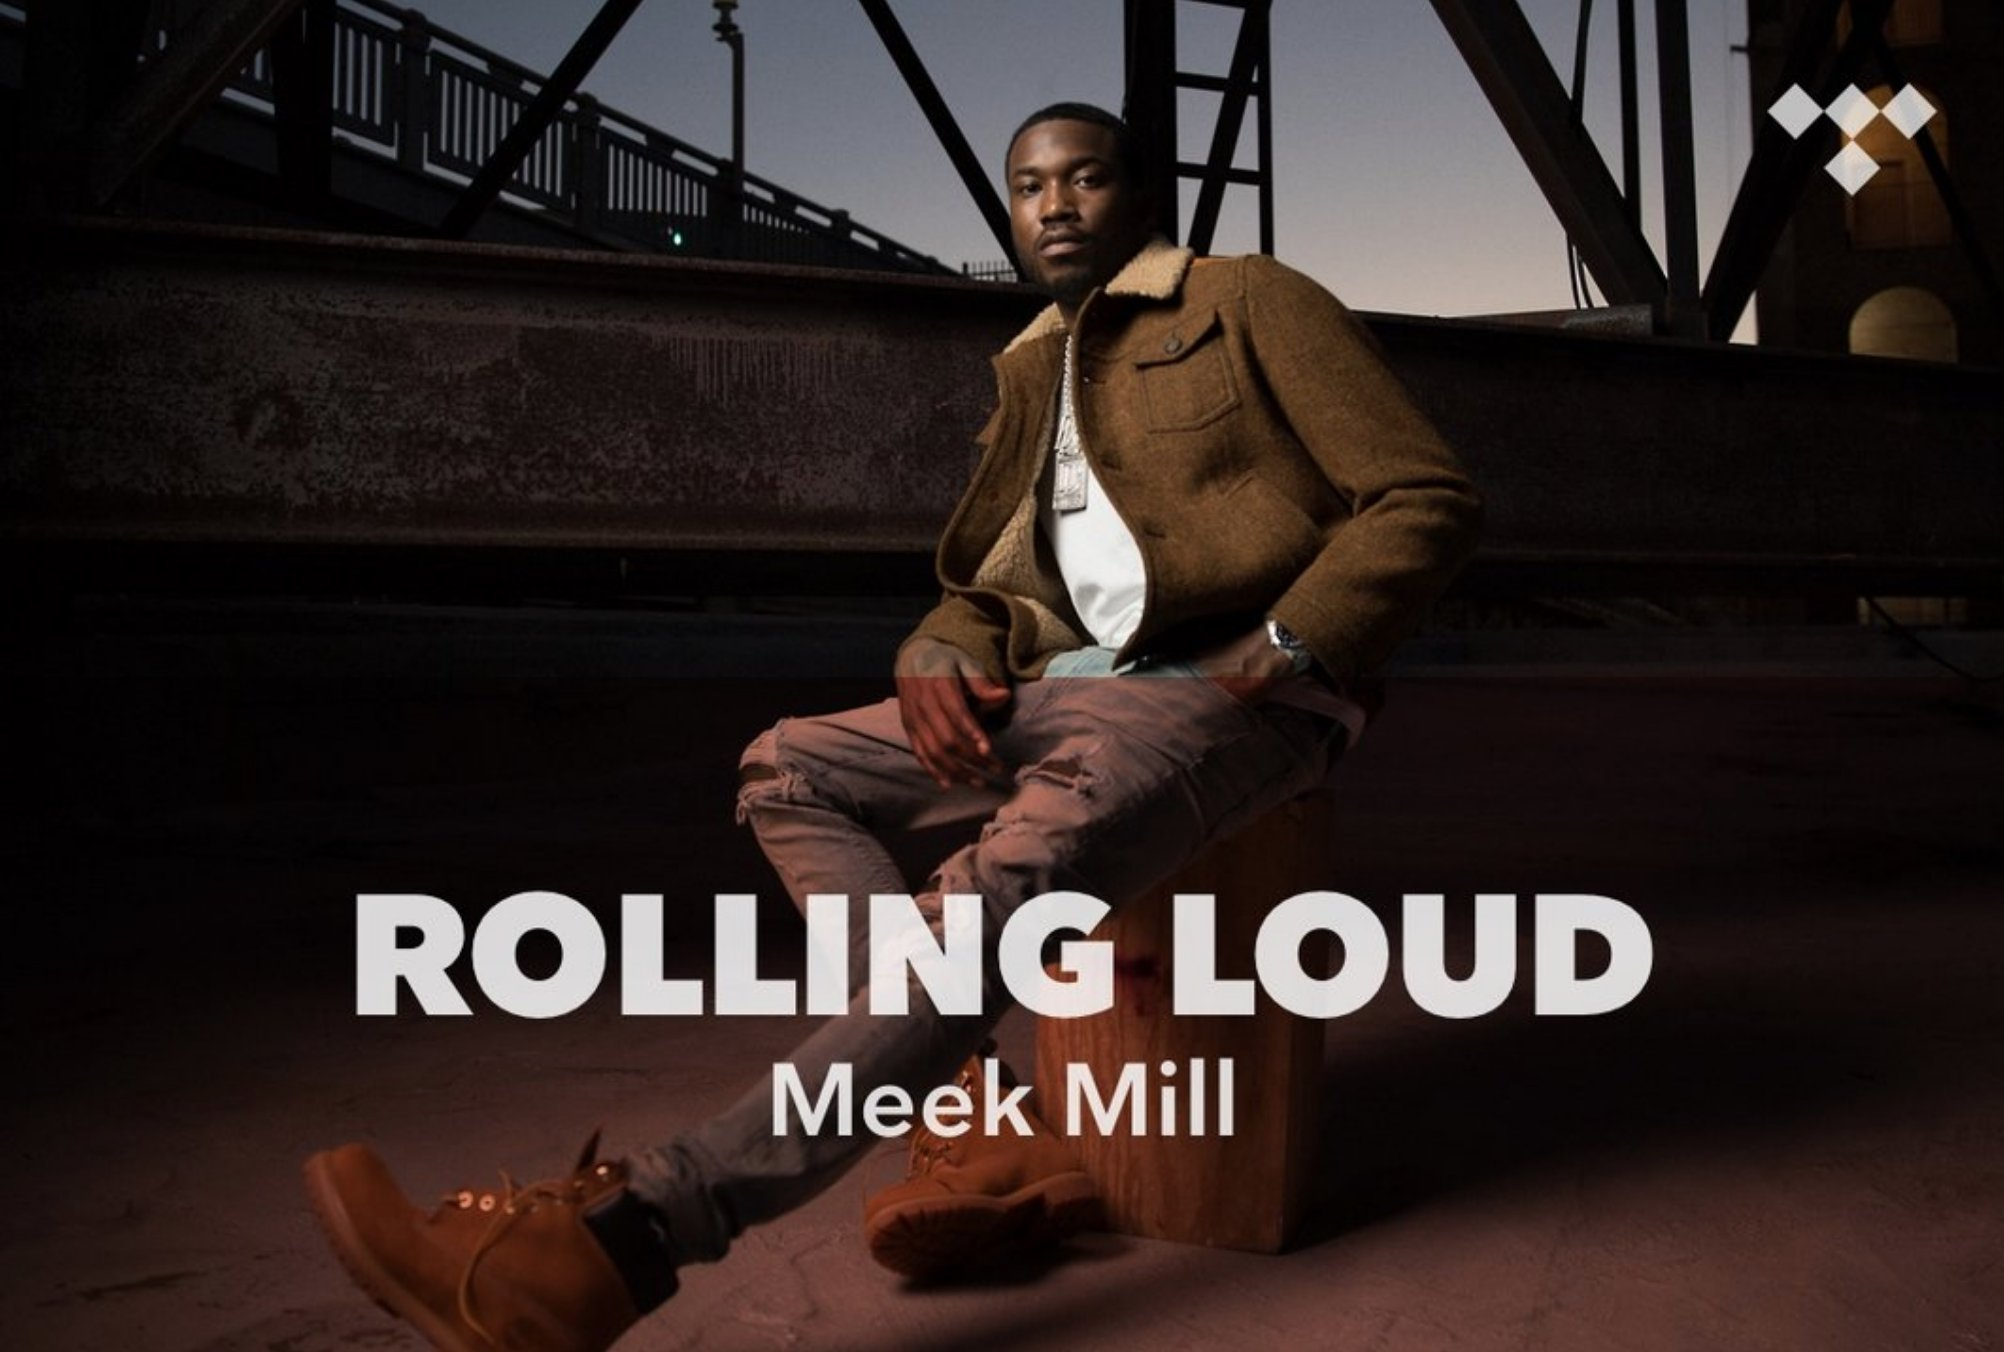 Meek Mill 2018 Rolling Loud Setlist https://t.co/vomB6YkoPa #TIDAL https://t.co/2sJ8ZSVmHu